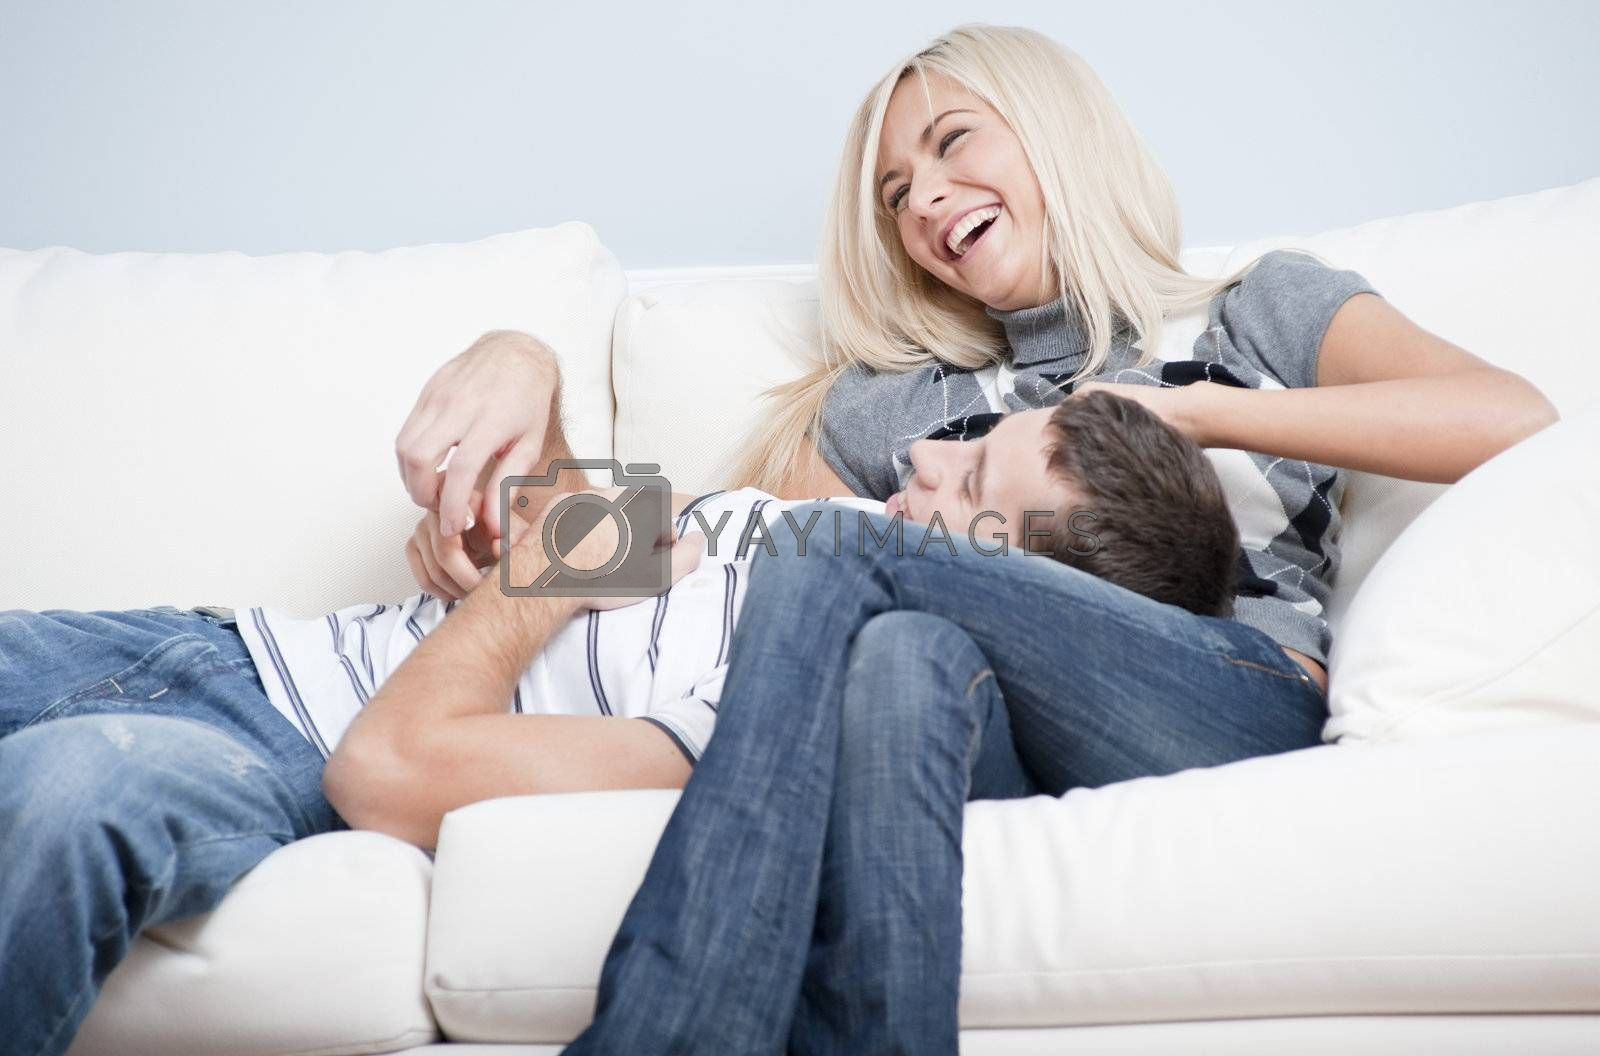 Laughing couple relaxing on couch, with man lying with his head in the woman's lap. Horizontal format.